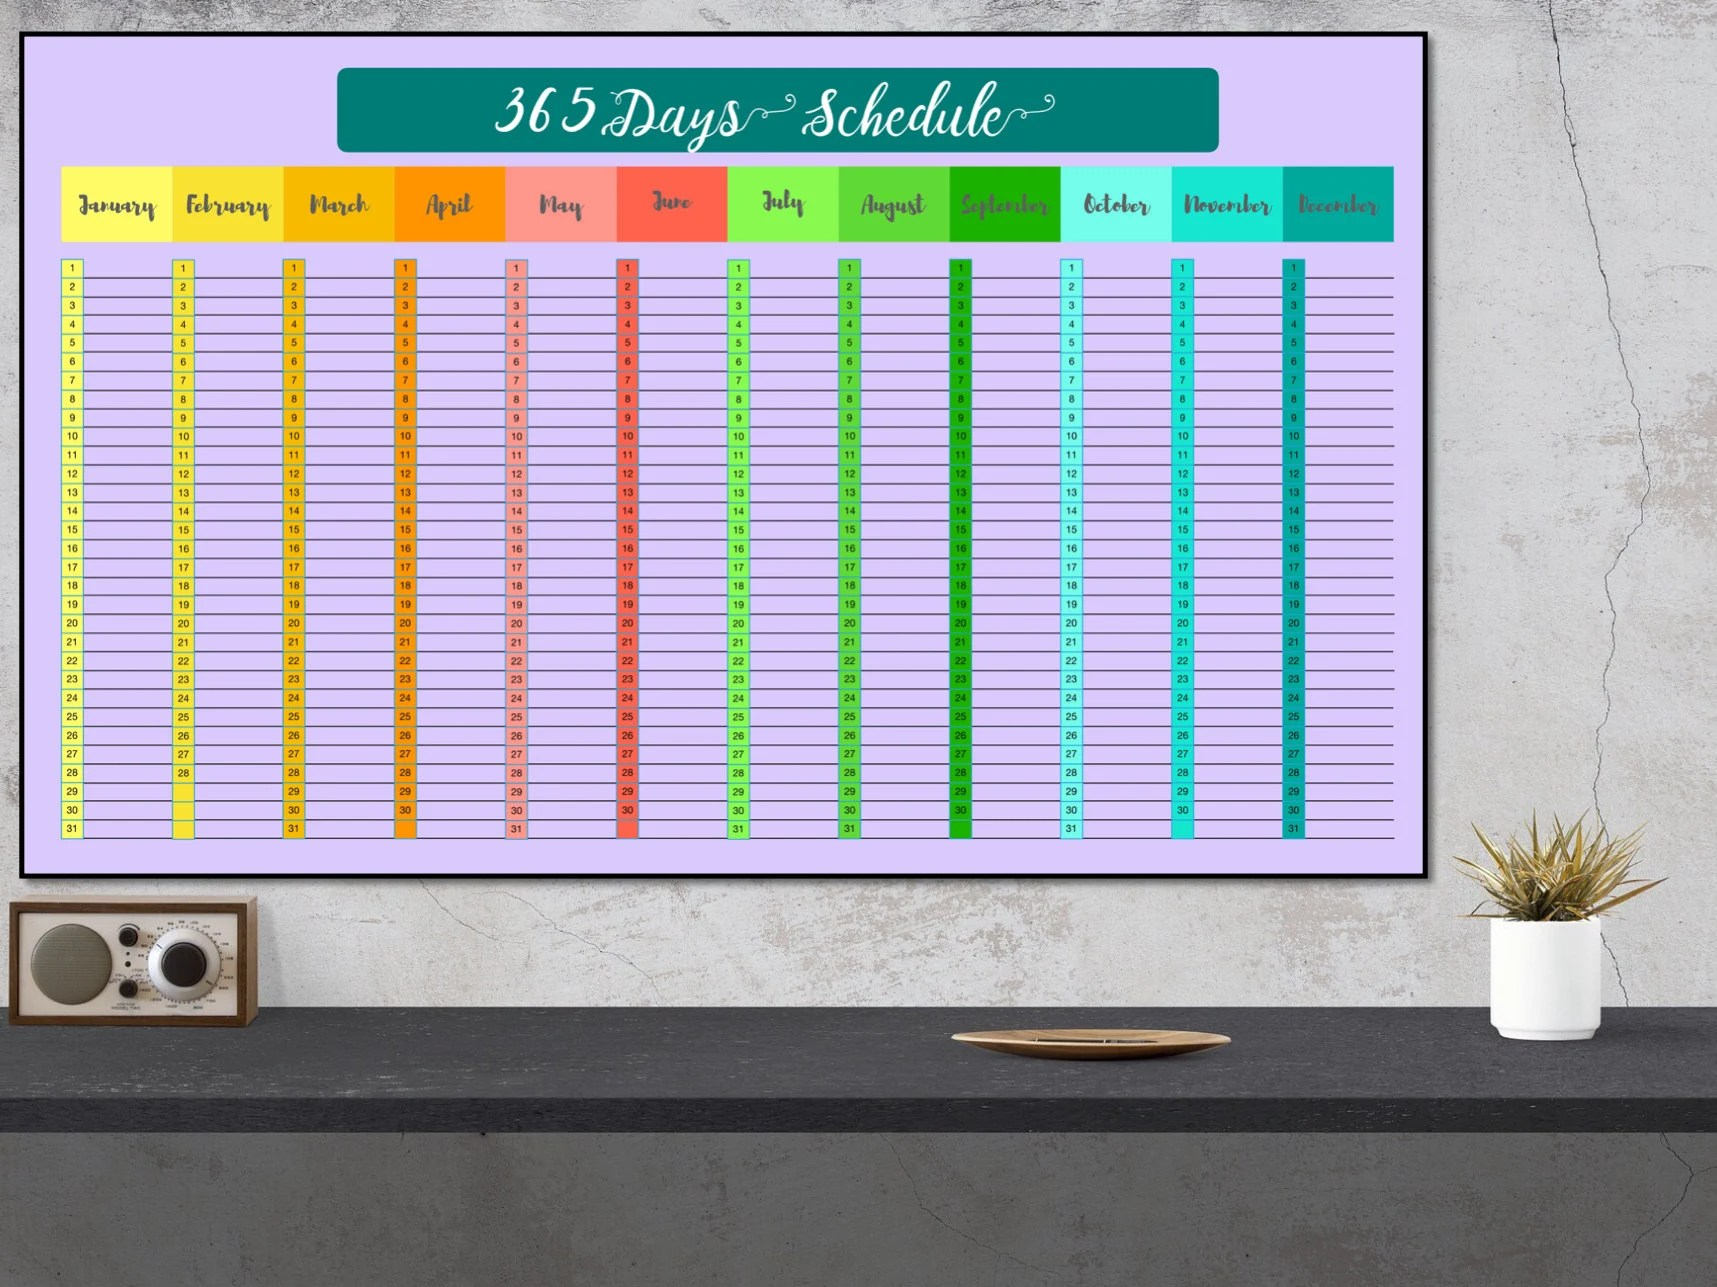 365 daily schedule yearly chart planner annual schedule Etsy